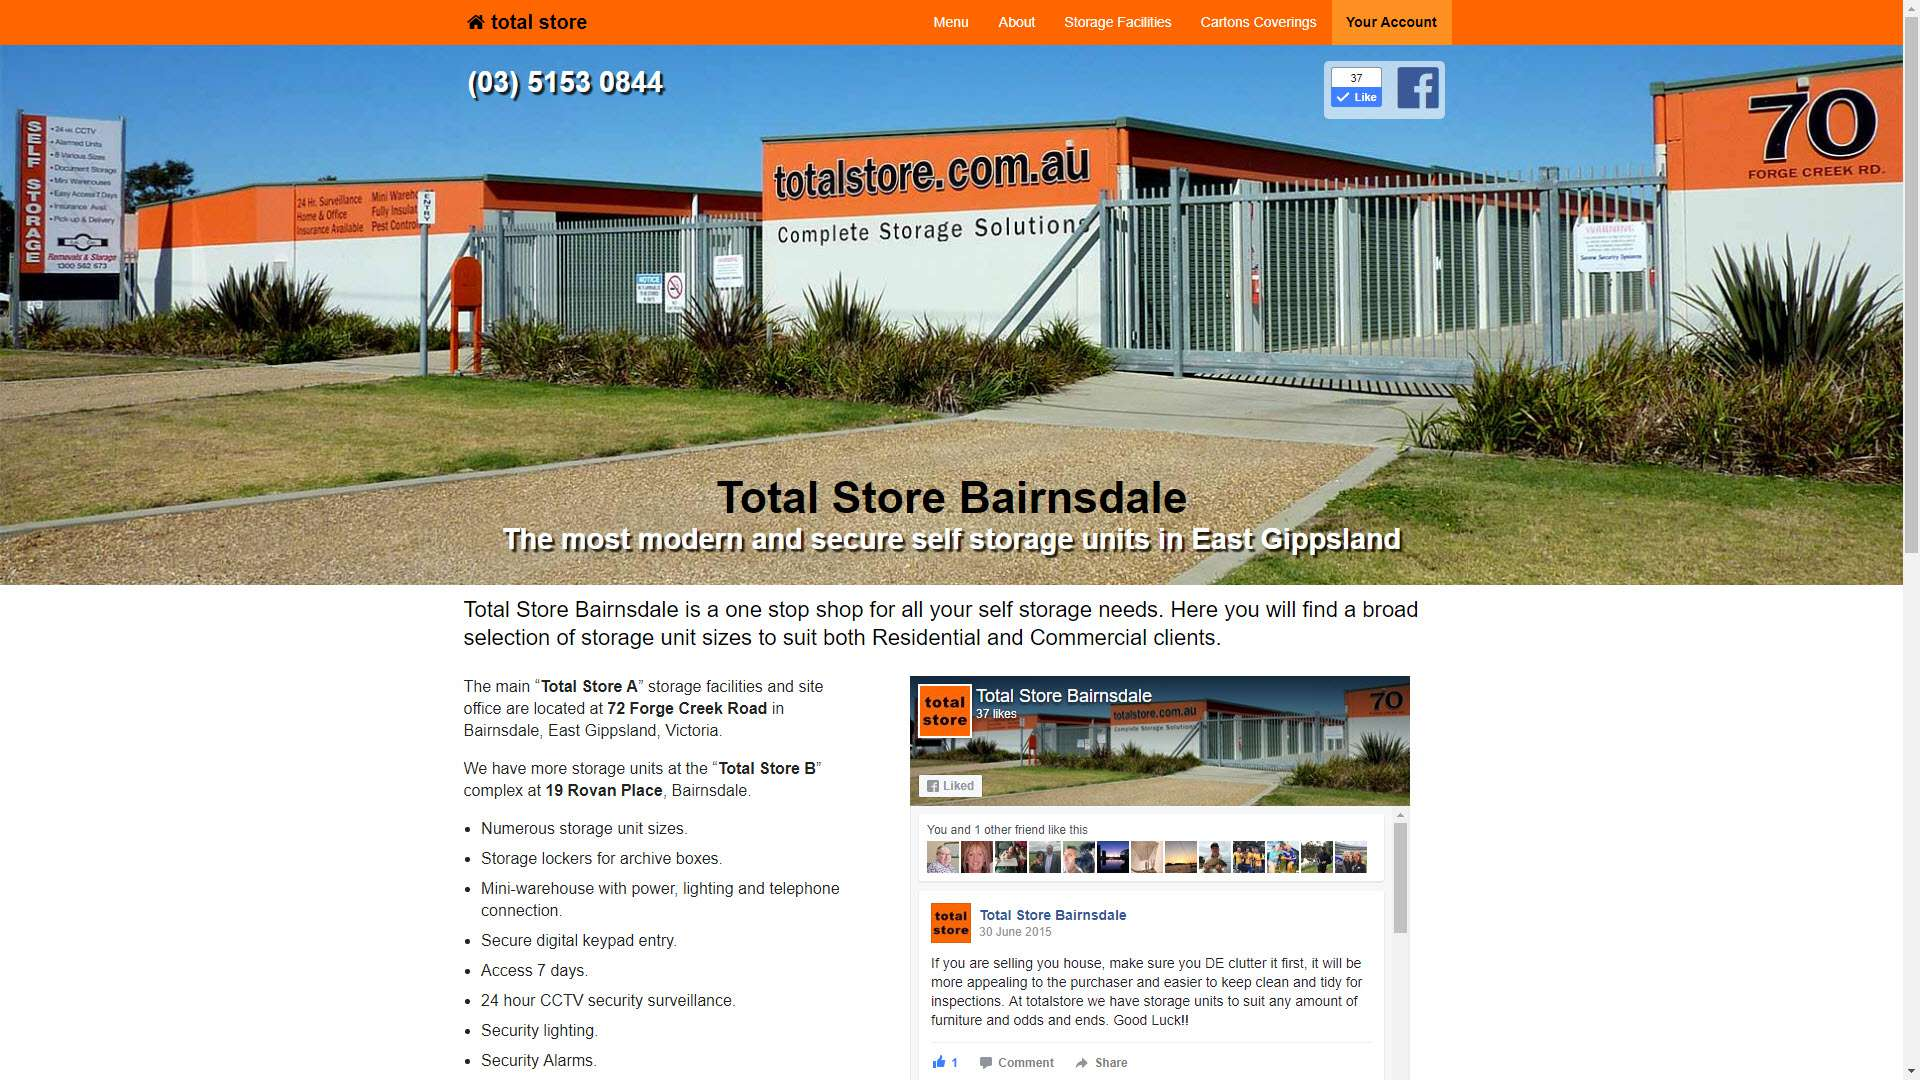 Total Store Bairnsdale